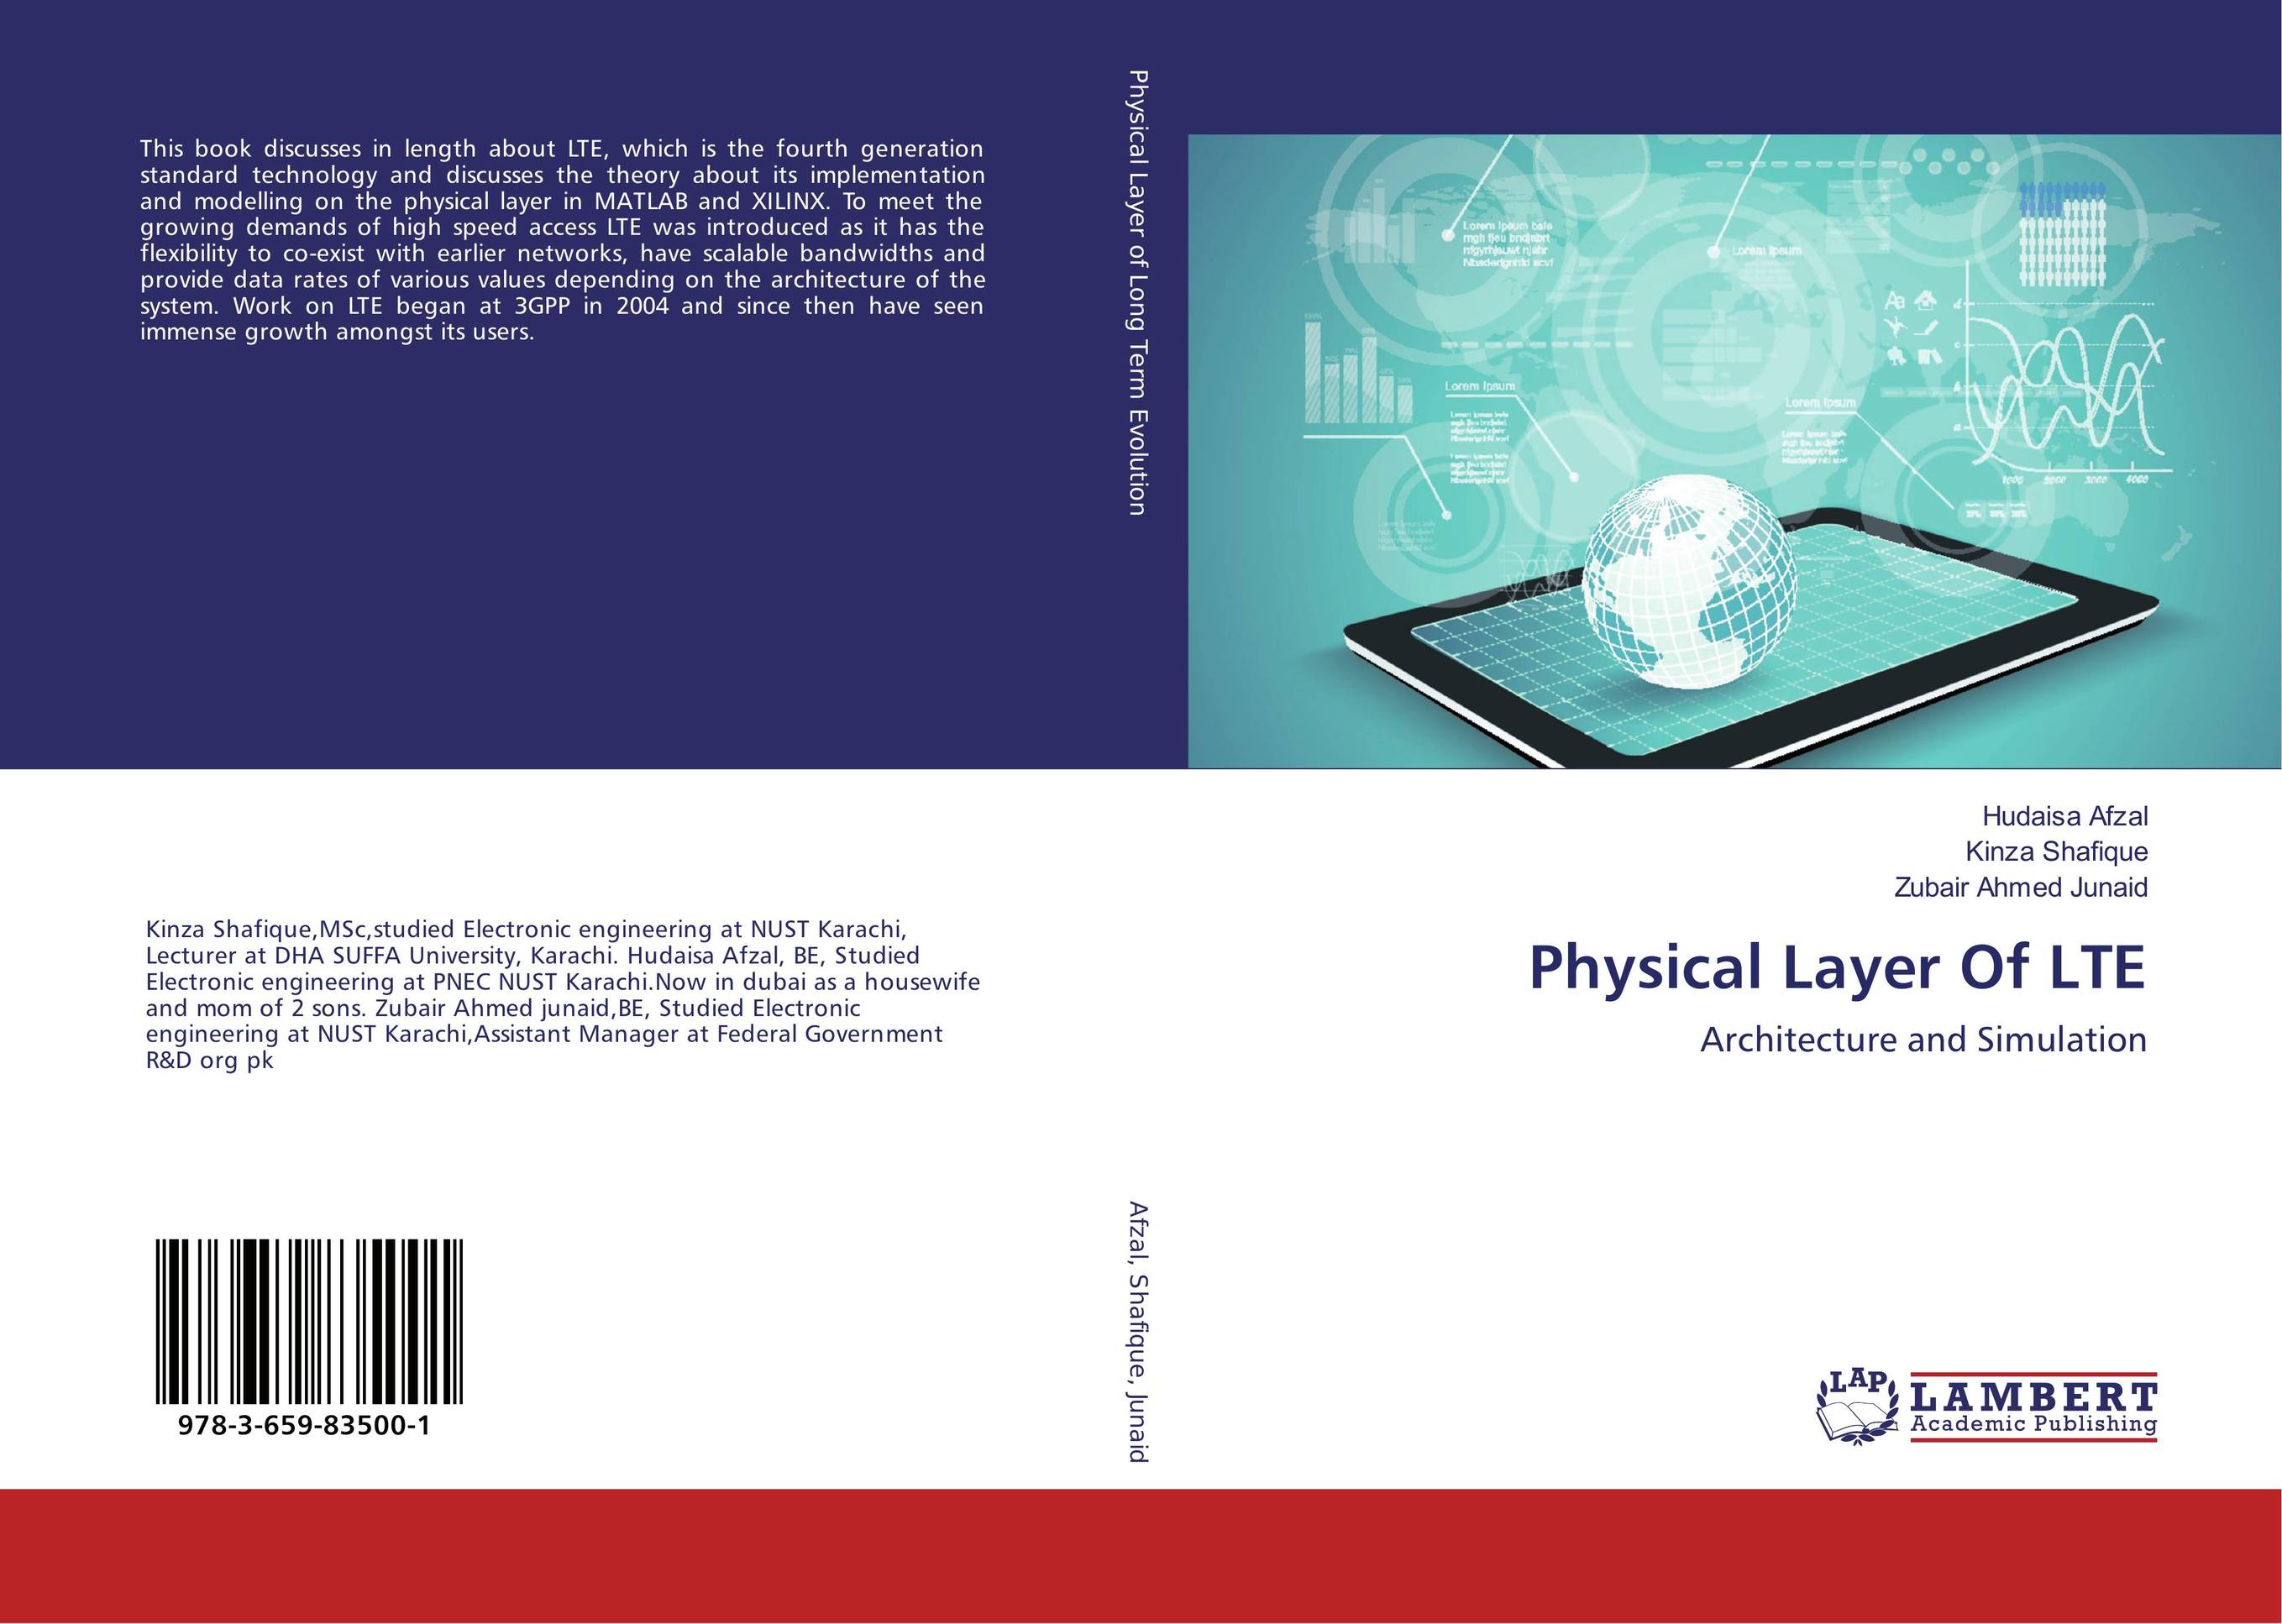 Physical Layer Of LTE evaluation of lte advanced networks